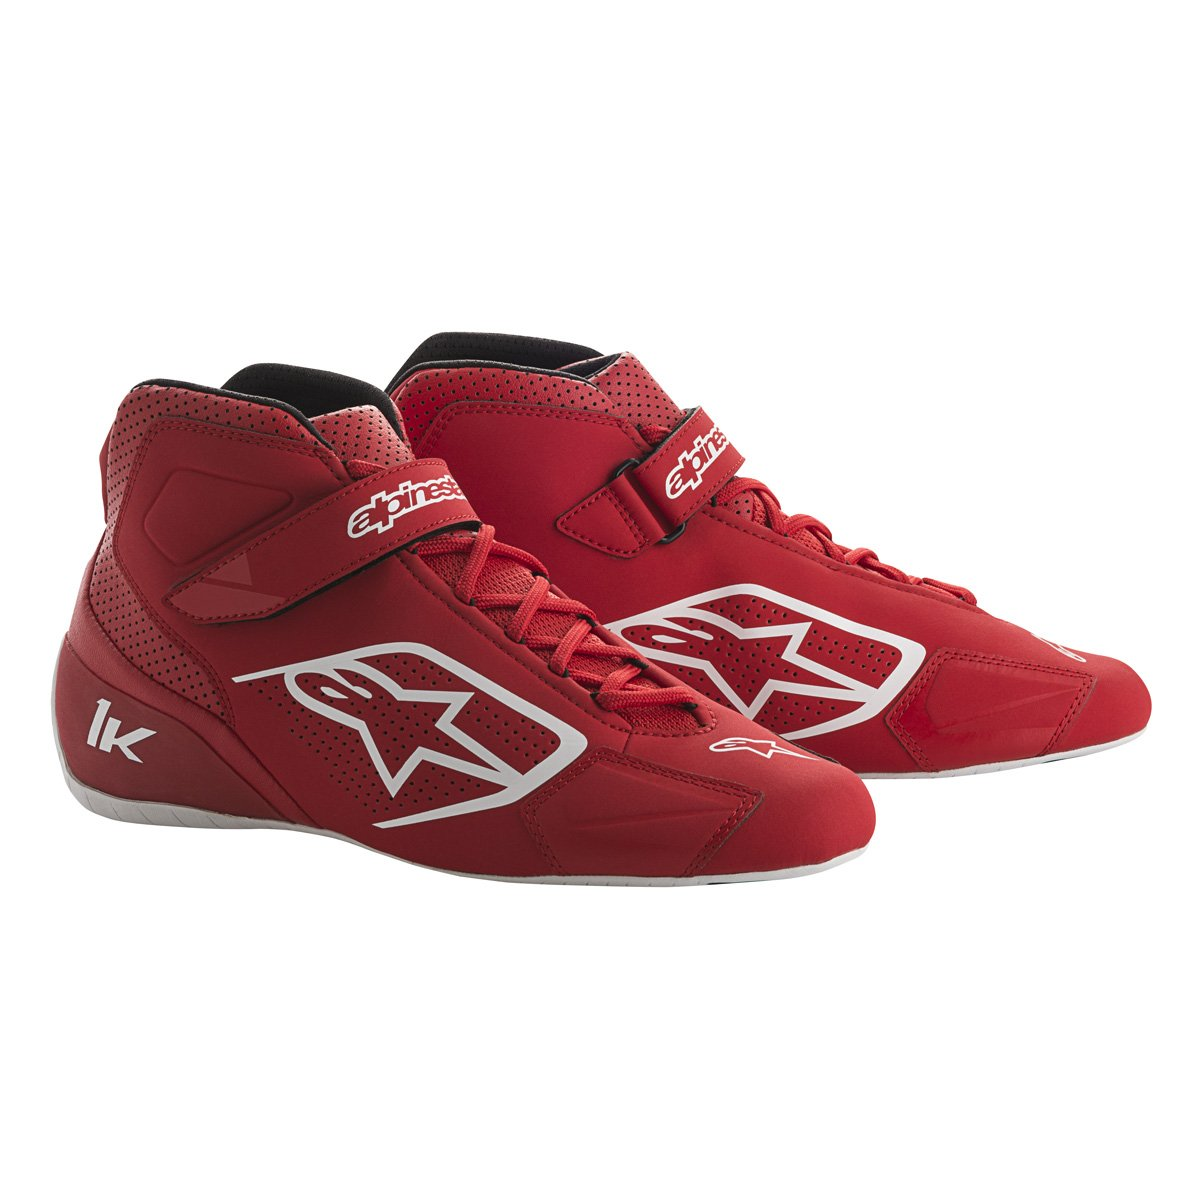 Black//Fuchsia Size 3.5 Alpinestars 2712018-1039-3.5 Tech 1-K Shoes